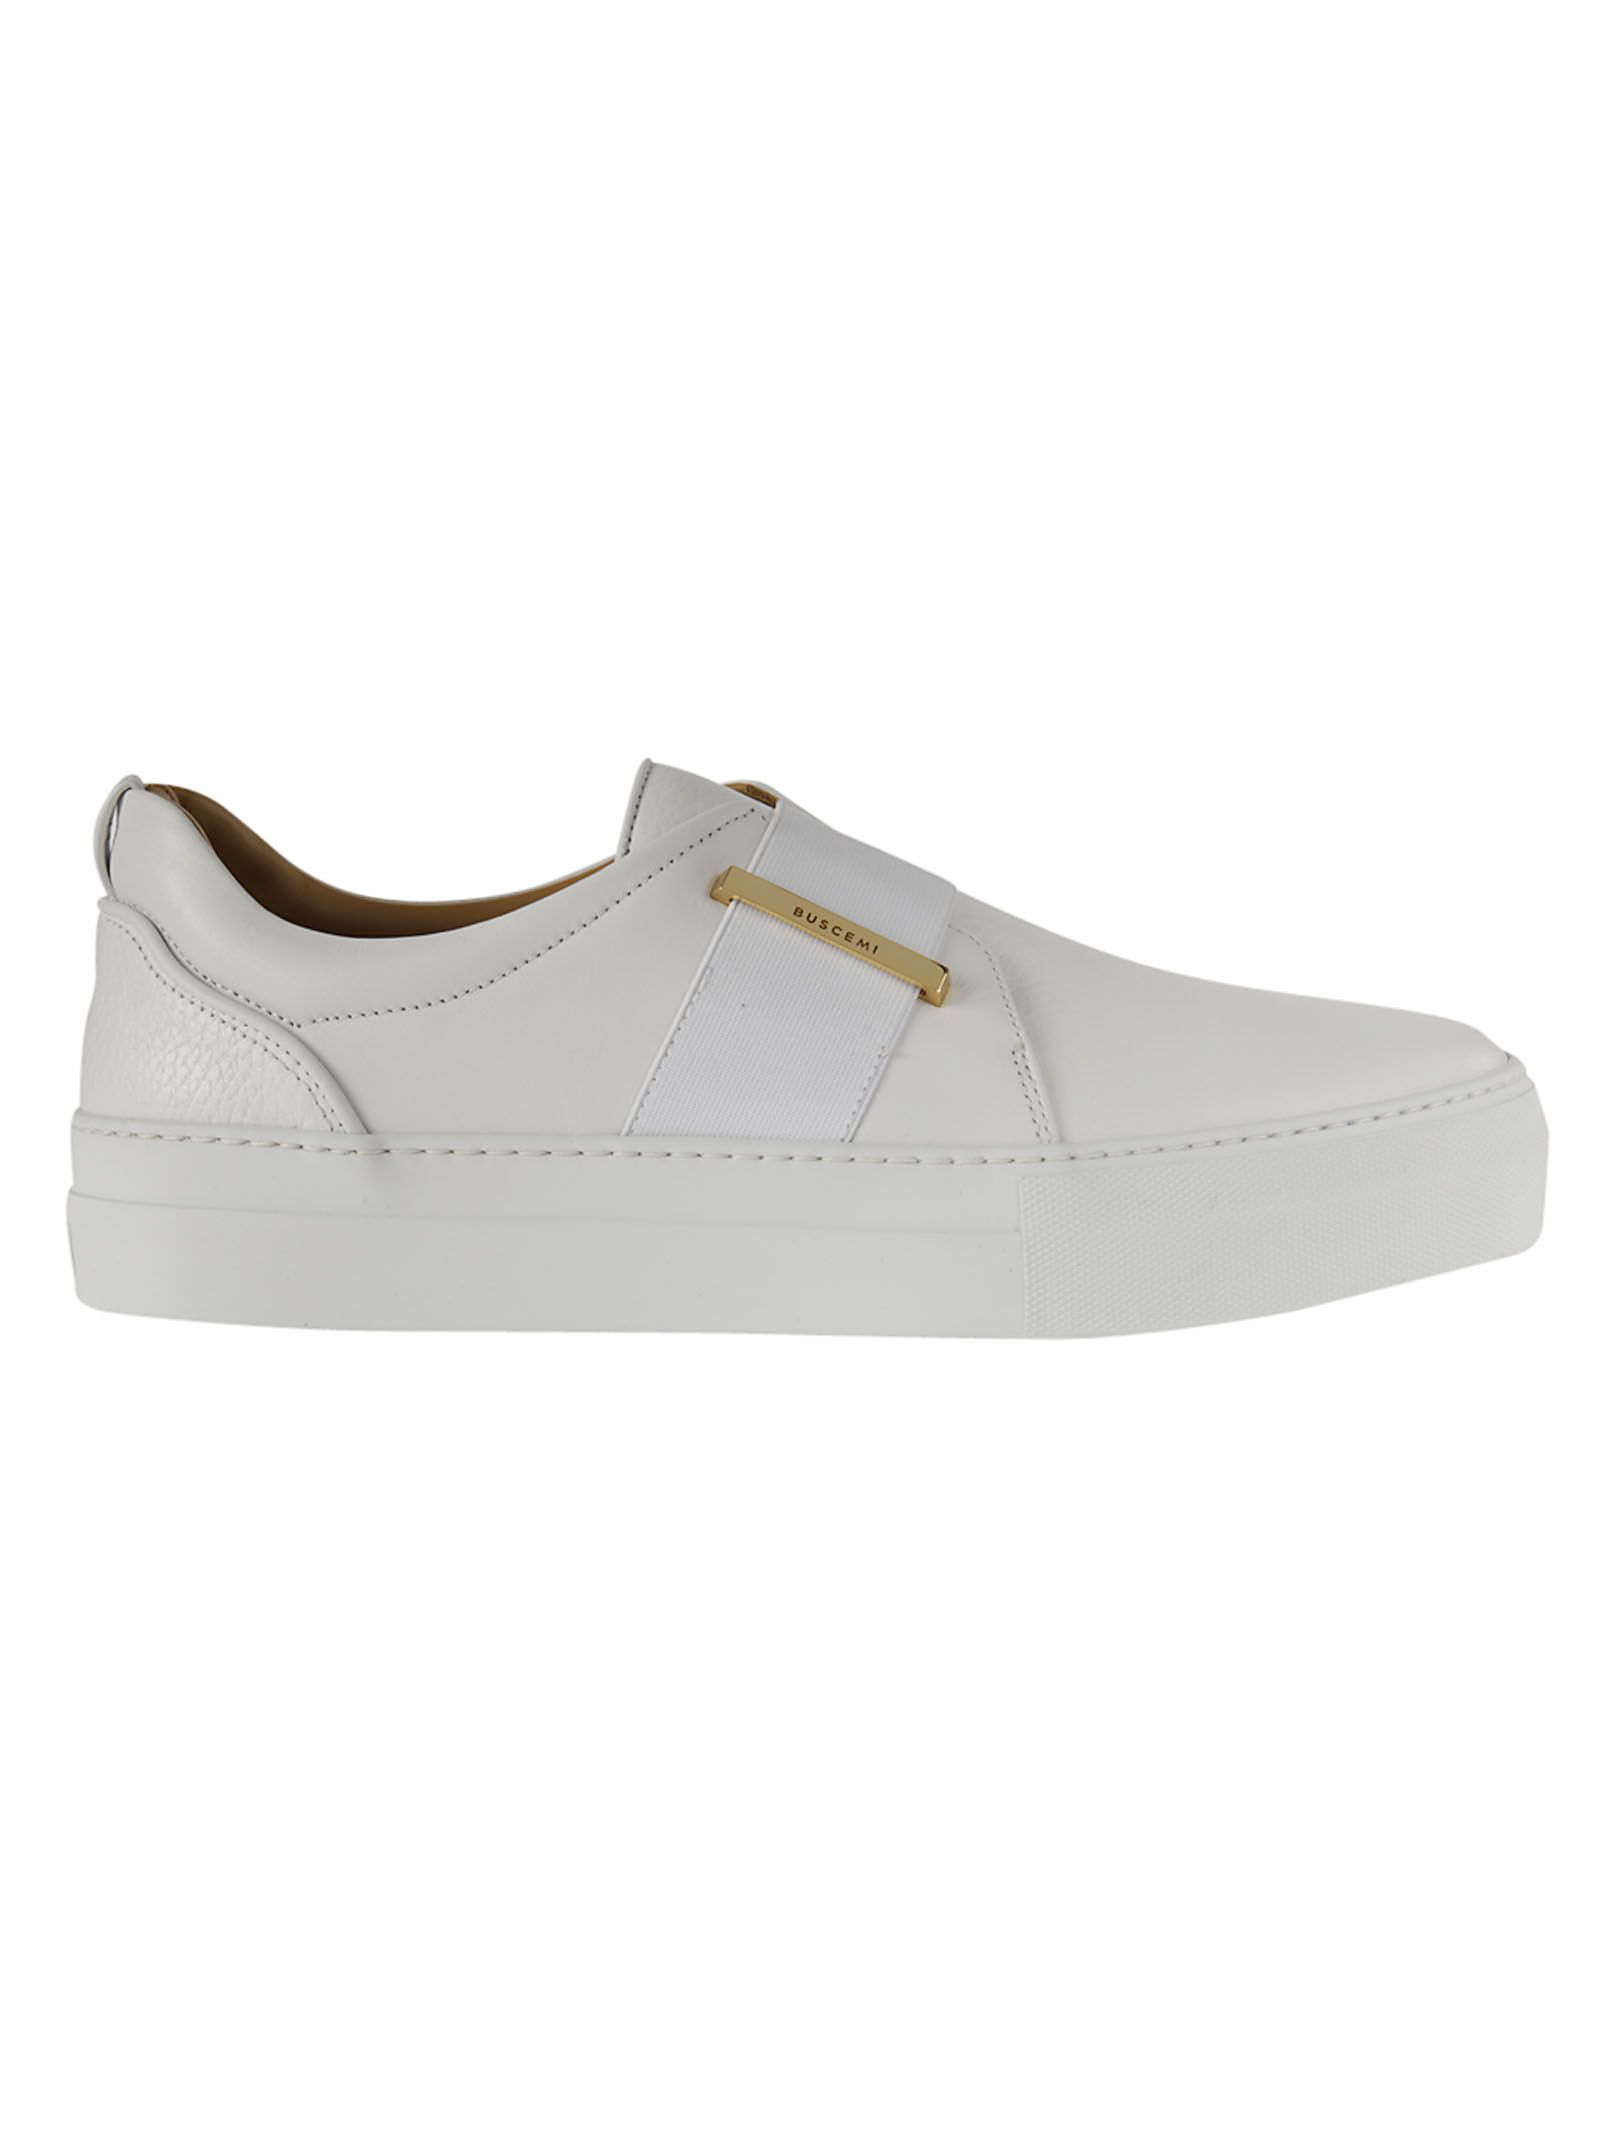 Buscemi Classic Slip-on Sneakers